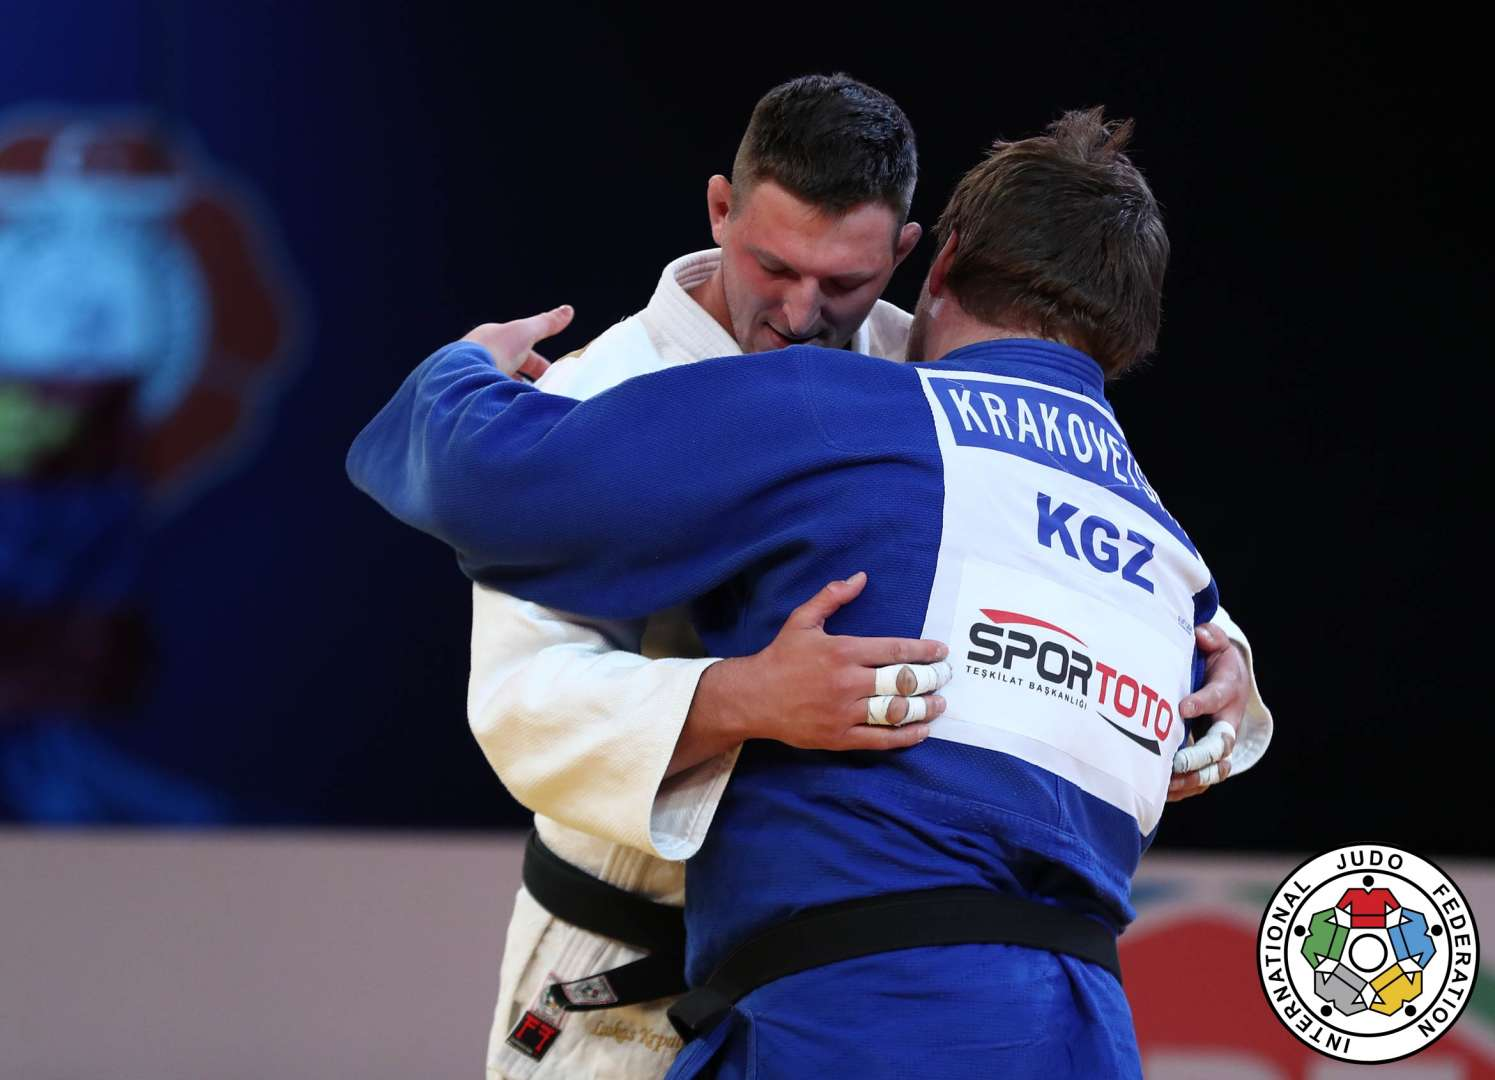 dating judoka Kim min-soo (judoka) height, age, dating, marriage, biography, net worth, body measurements, unknown facts & latest updates 2018 check more details.